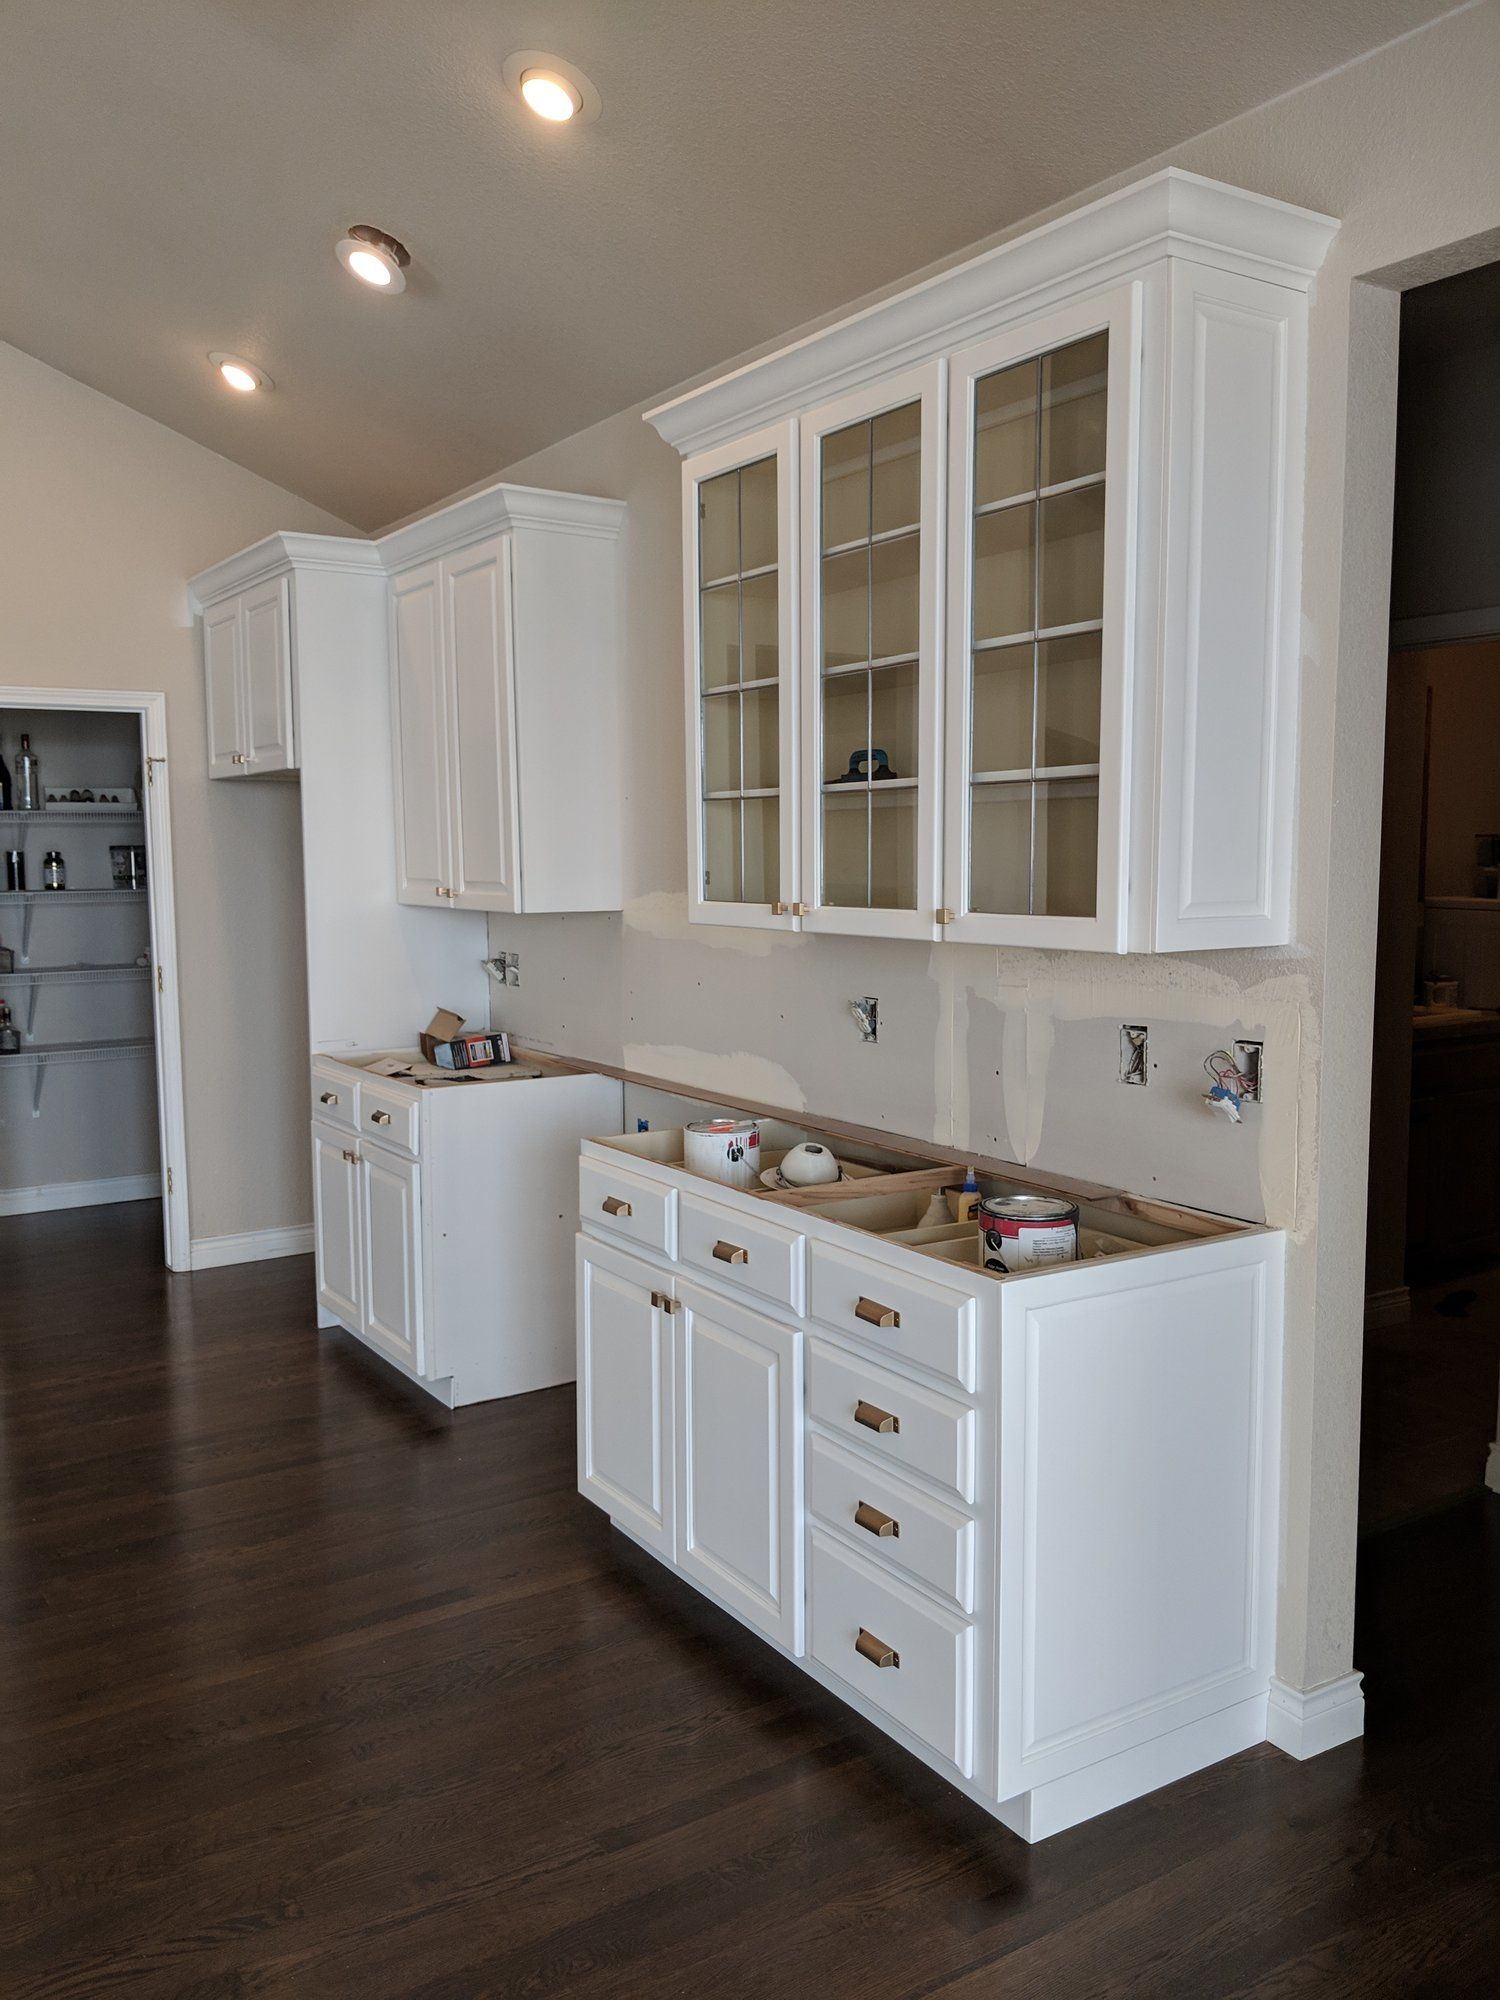 Loveland Cabinet Refinishing In 2020 Refinishing Cabinets Kitchen Remodeling Projects Cabinet